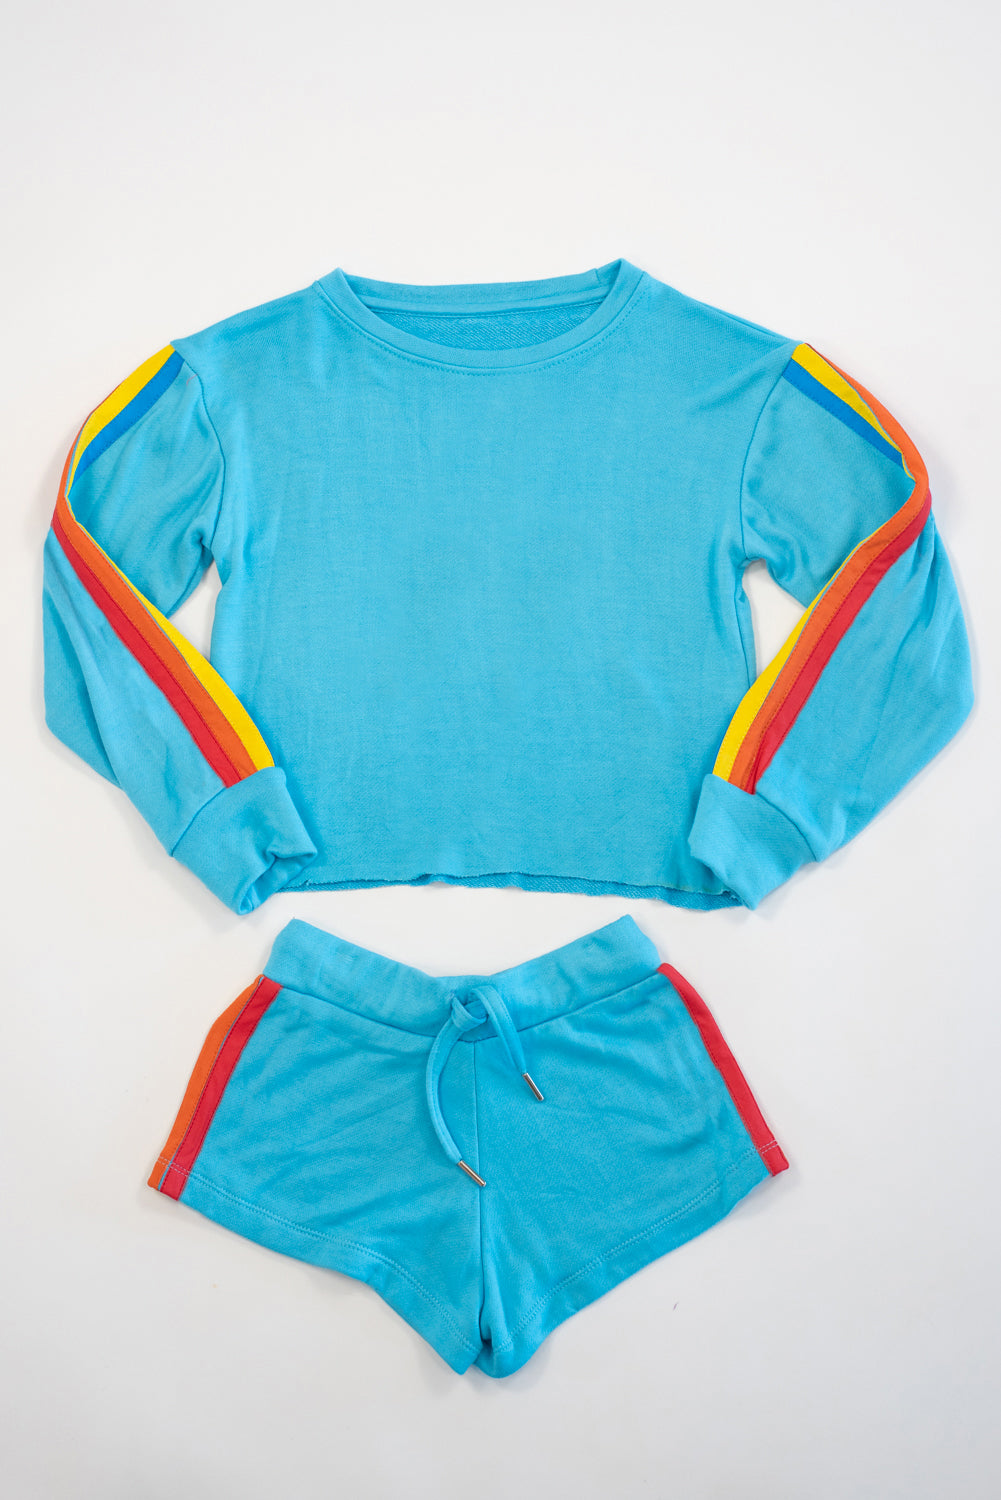 *Neon Turquoise Striped Shorts*